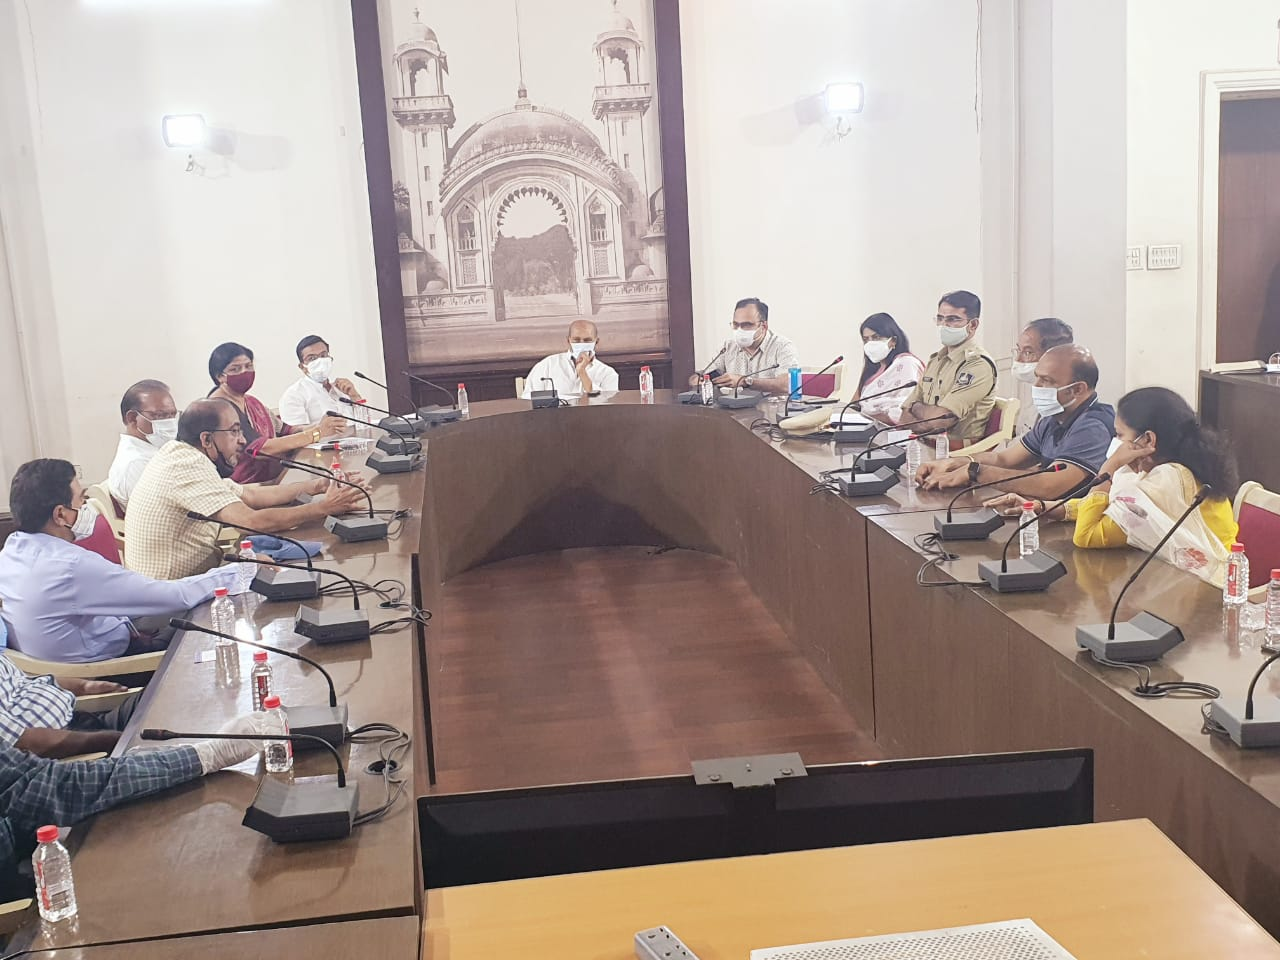 Meeting held with representatives of Group C hospitals in presence of Minister and public representatives